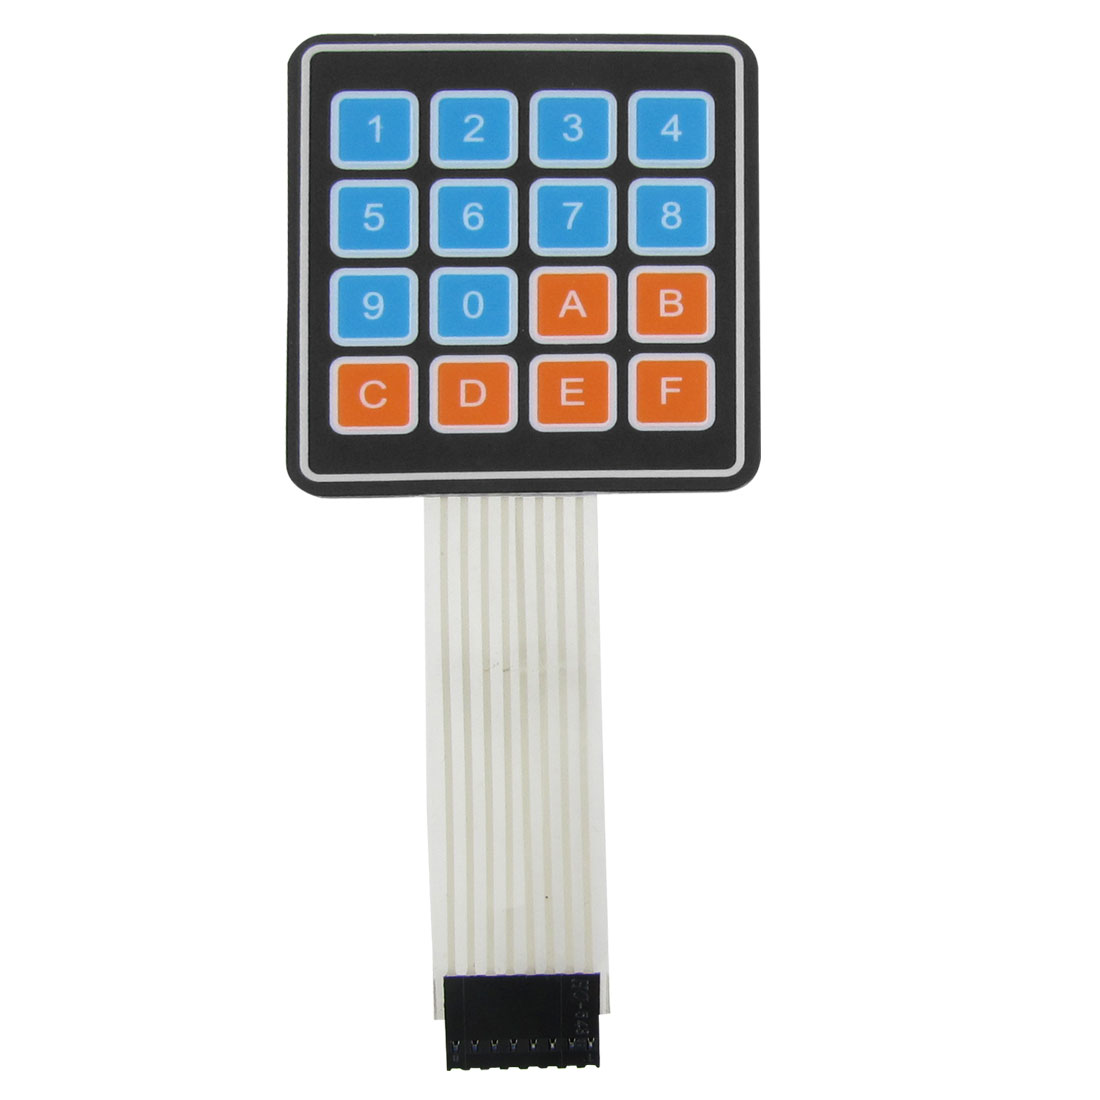 4x4 16 Key Matrix DIY Membrane Switch Touch Pad 65x60x0.8mm DC 12V 30mA